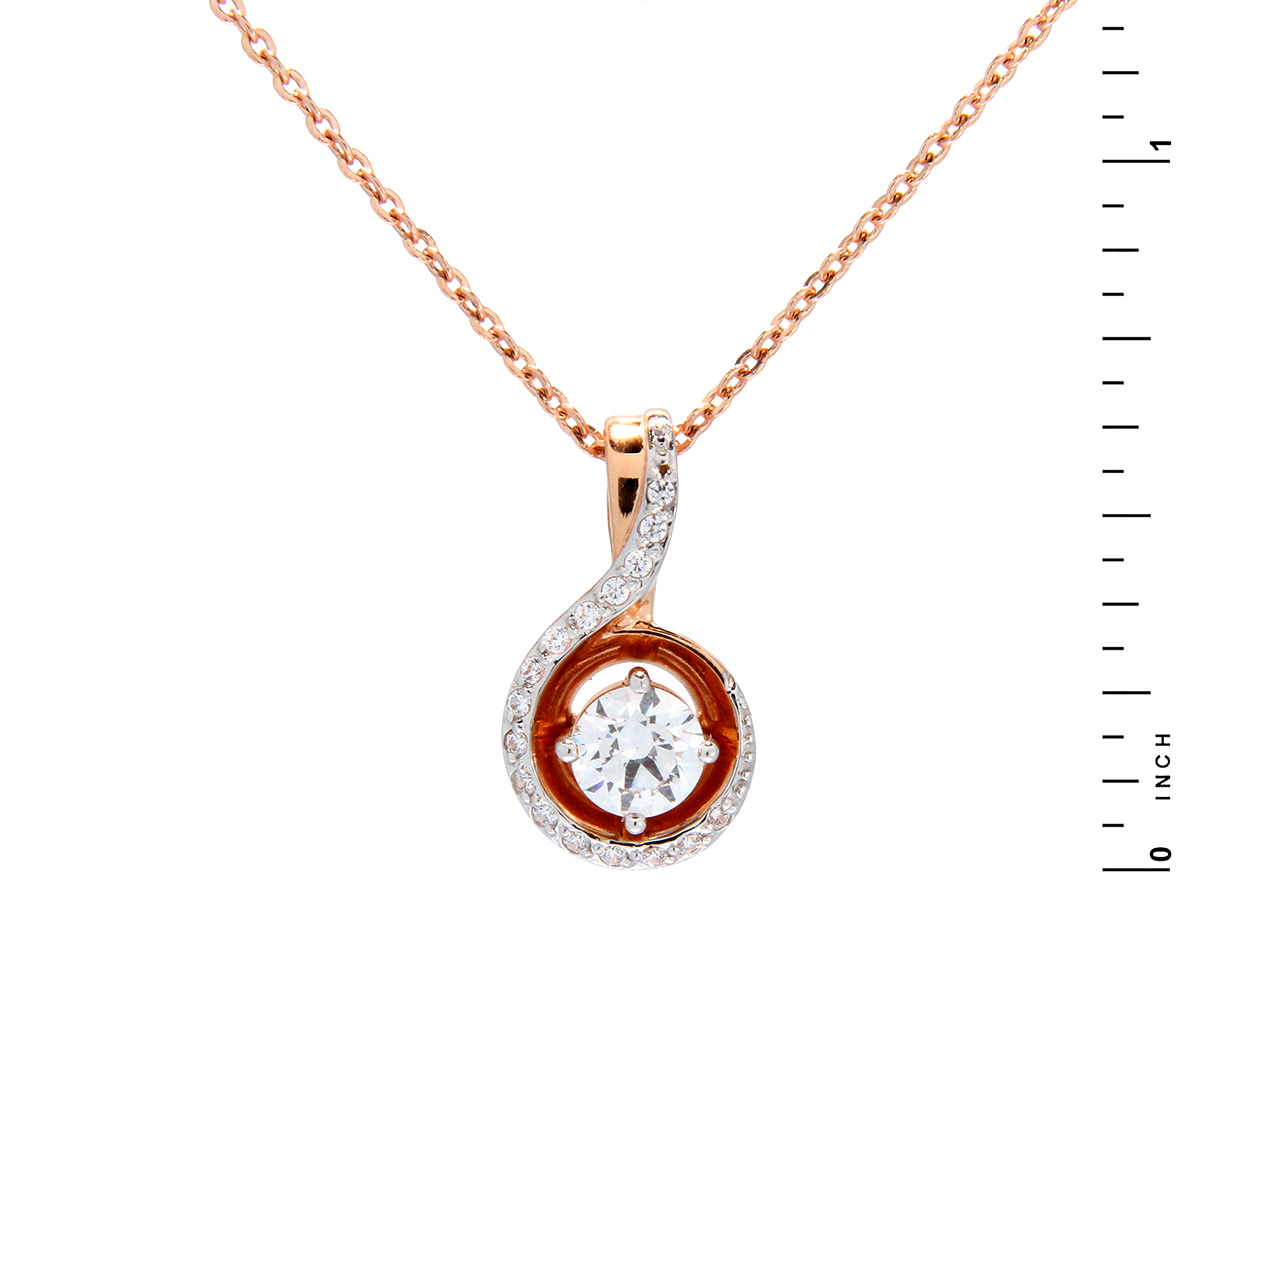 Two tones of rose gold pendant 1